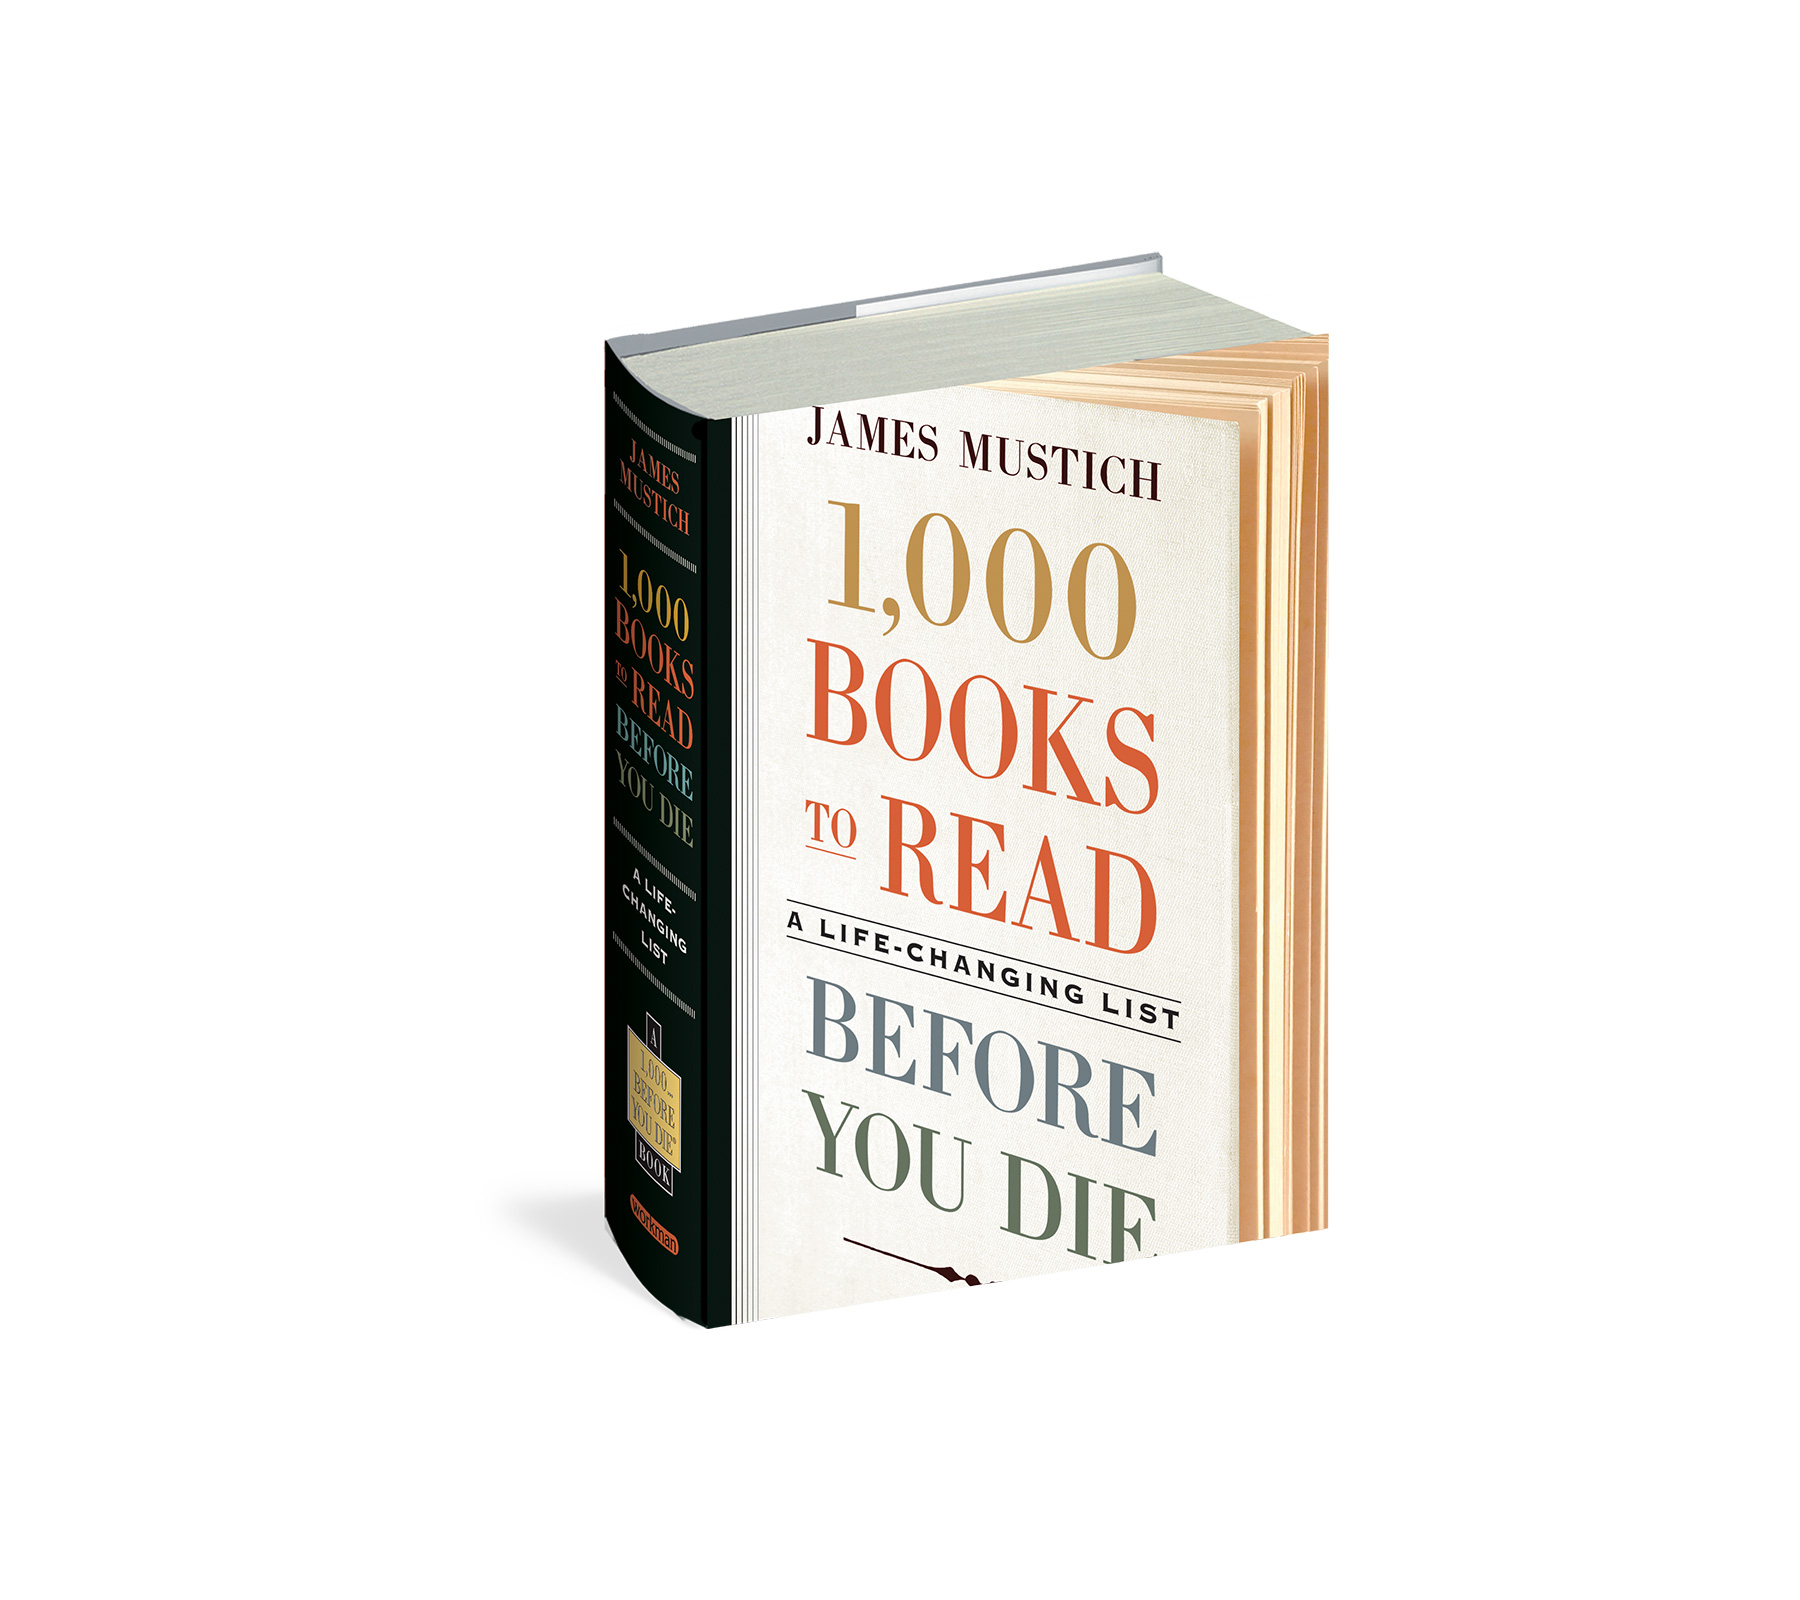 Best Gifts for Readers: 1,000 Books to Read Before You Die, by James Mustich